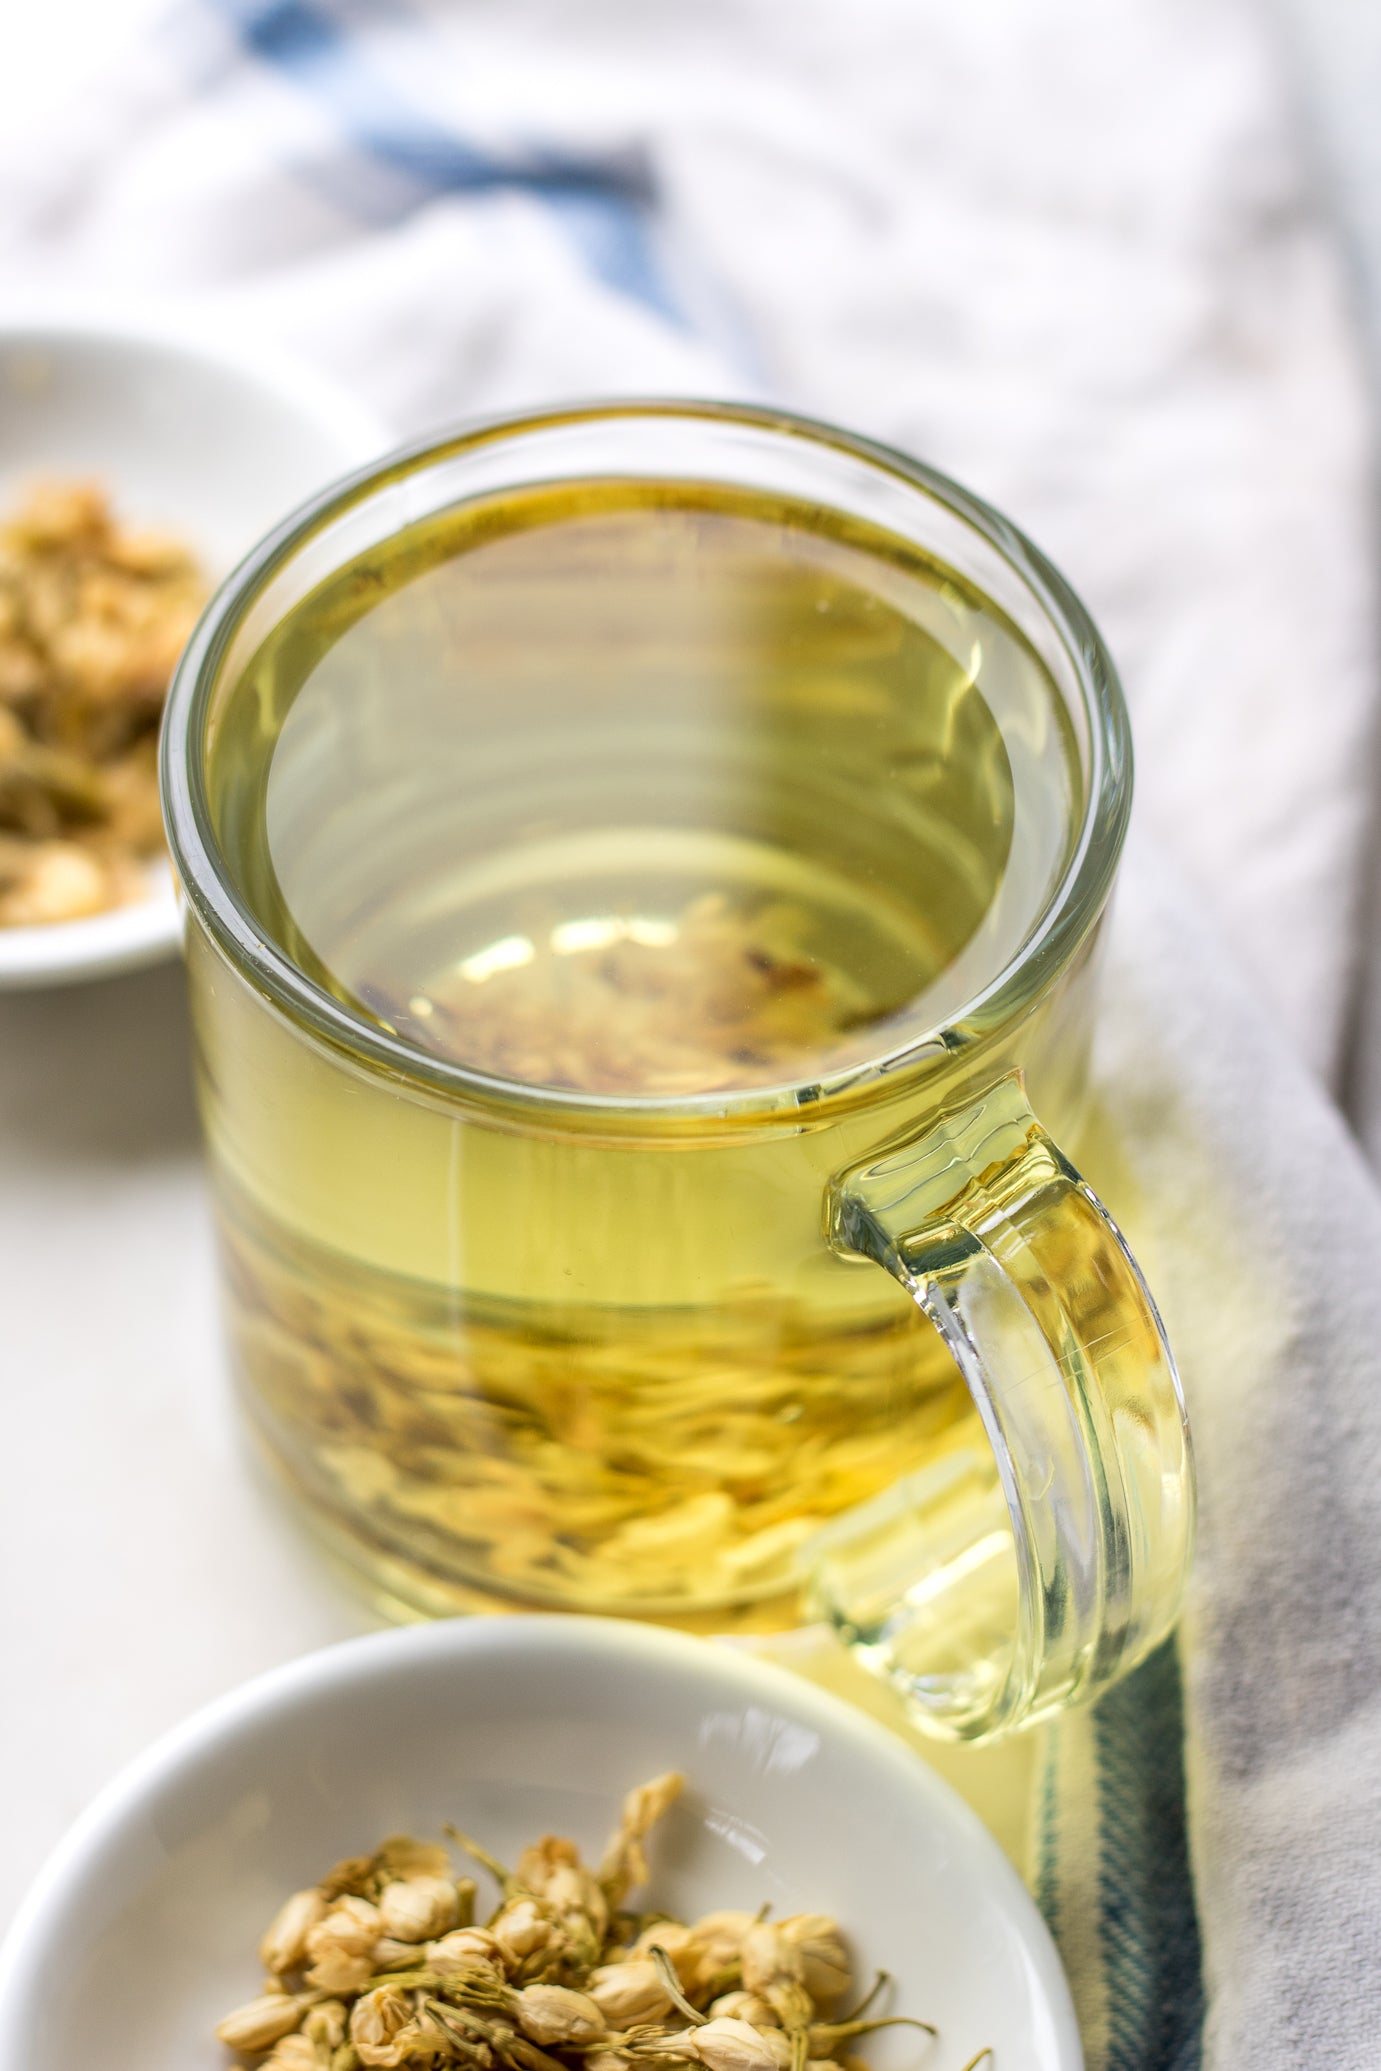 How To Make Jasmine Flower Tea